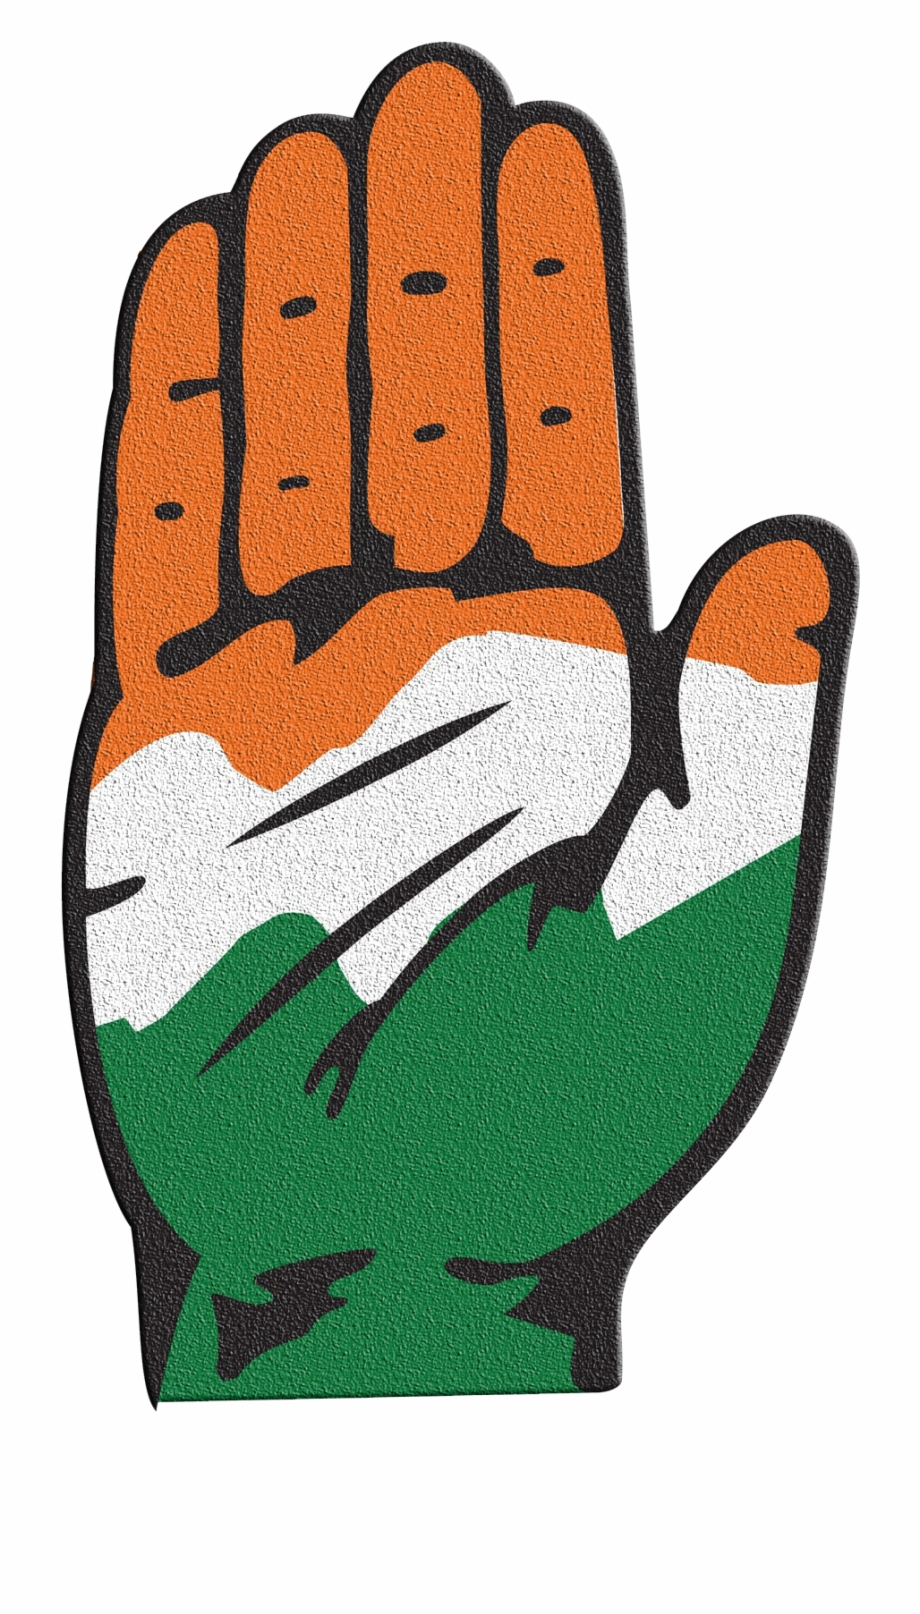 Congress Logo Png Transparent Image.